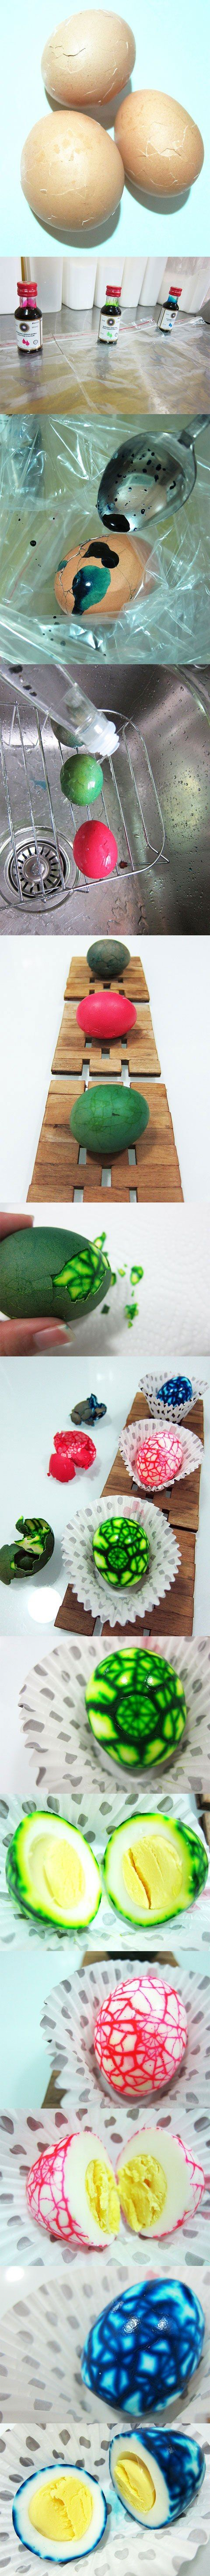 Marbled Easter Eggs. LOOK!!! We did do them right! lol @Christine Frankson